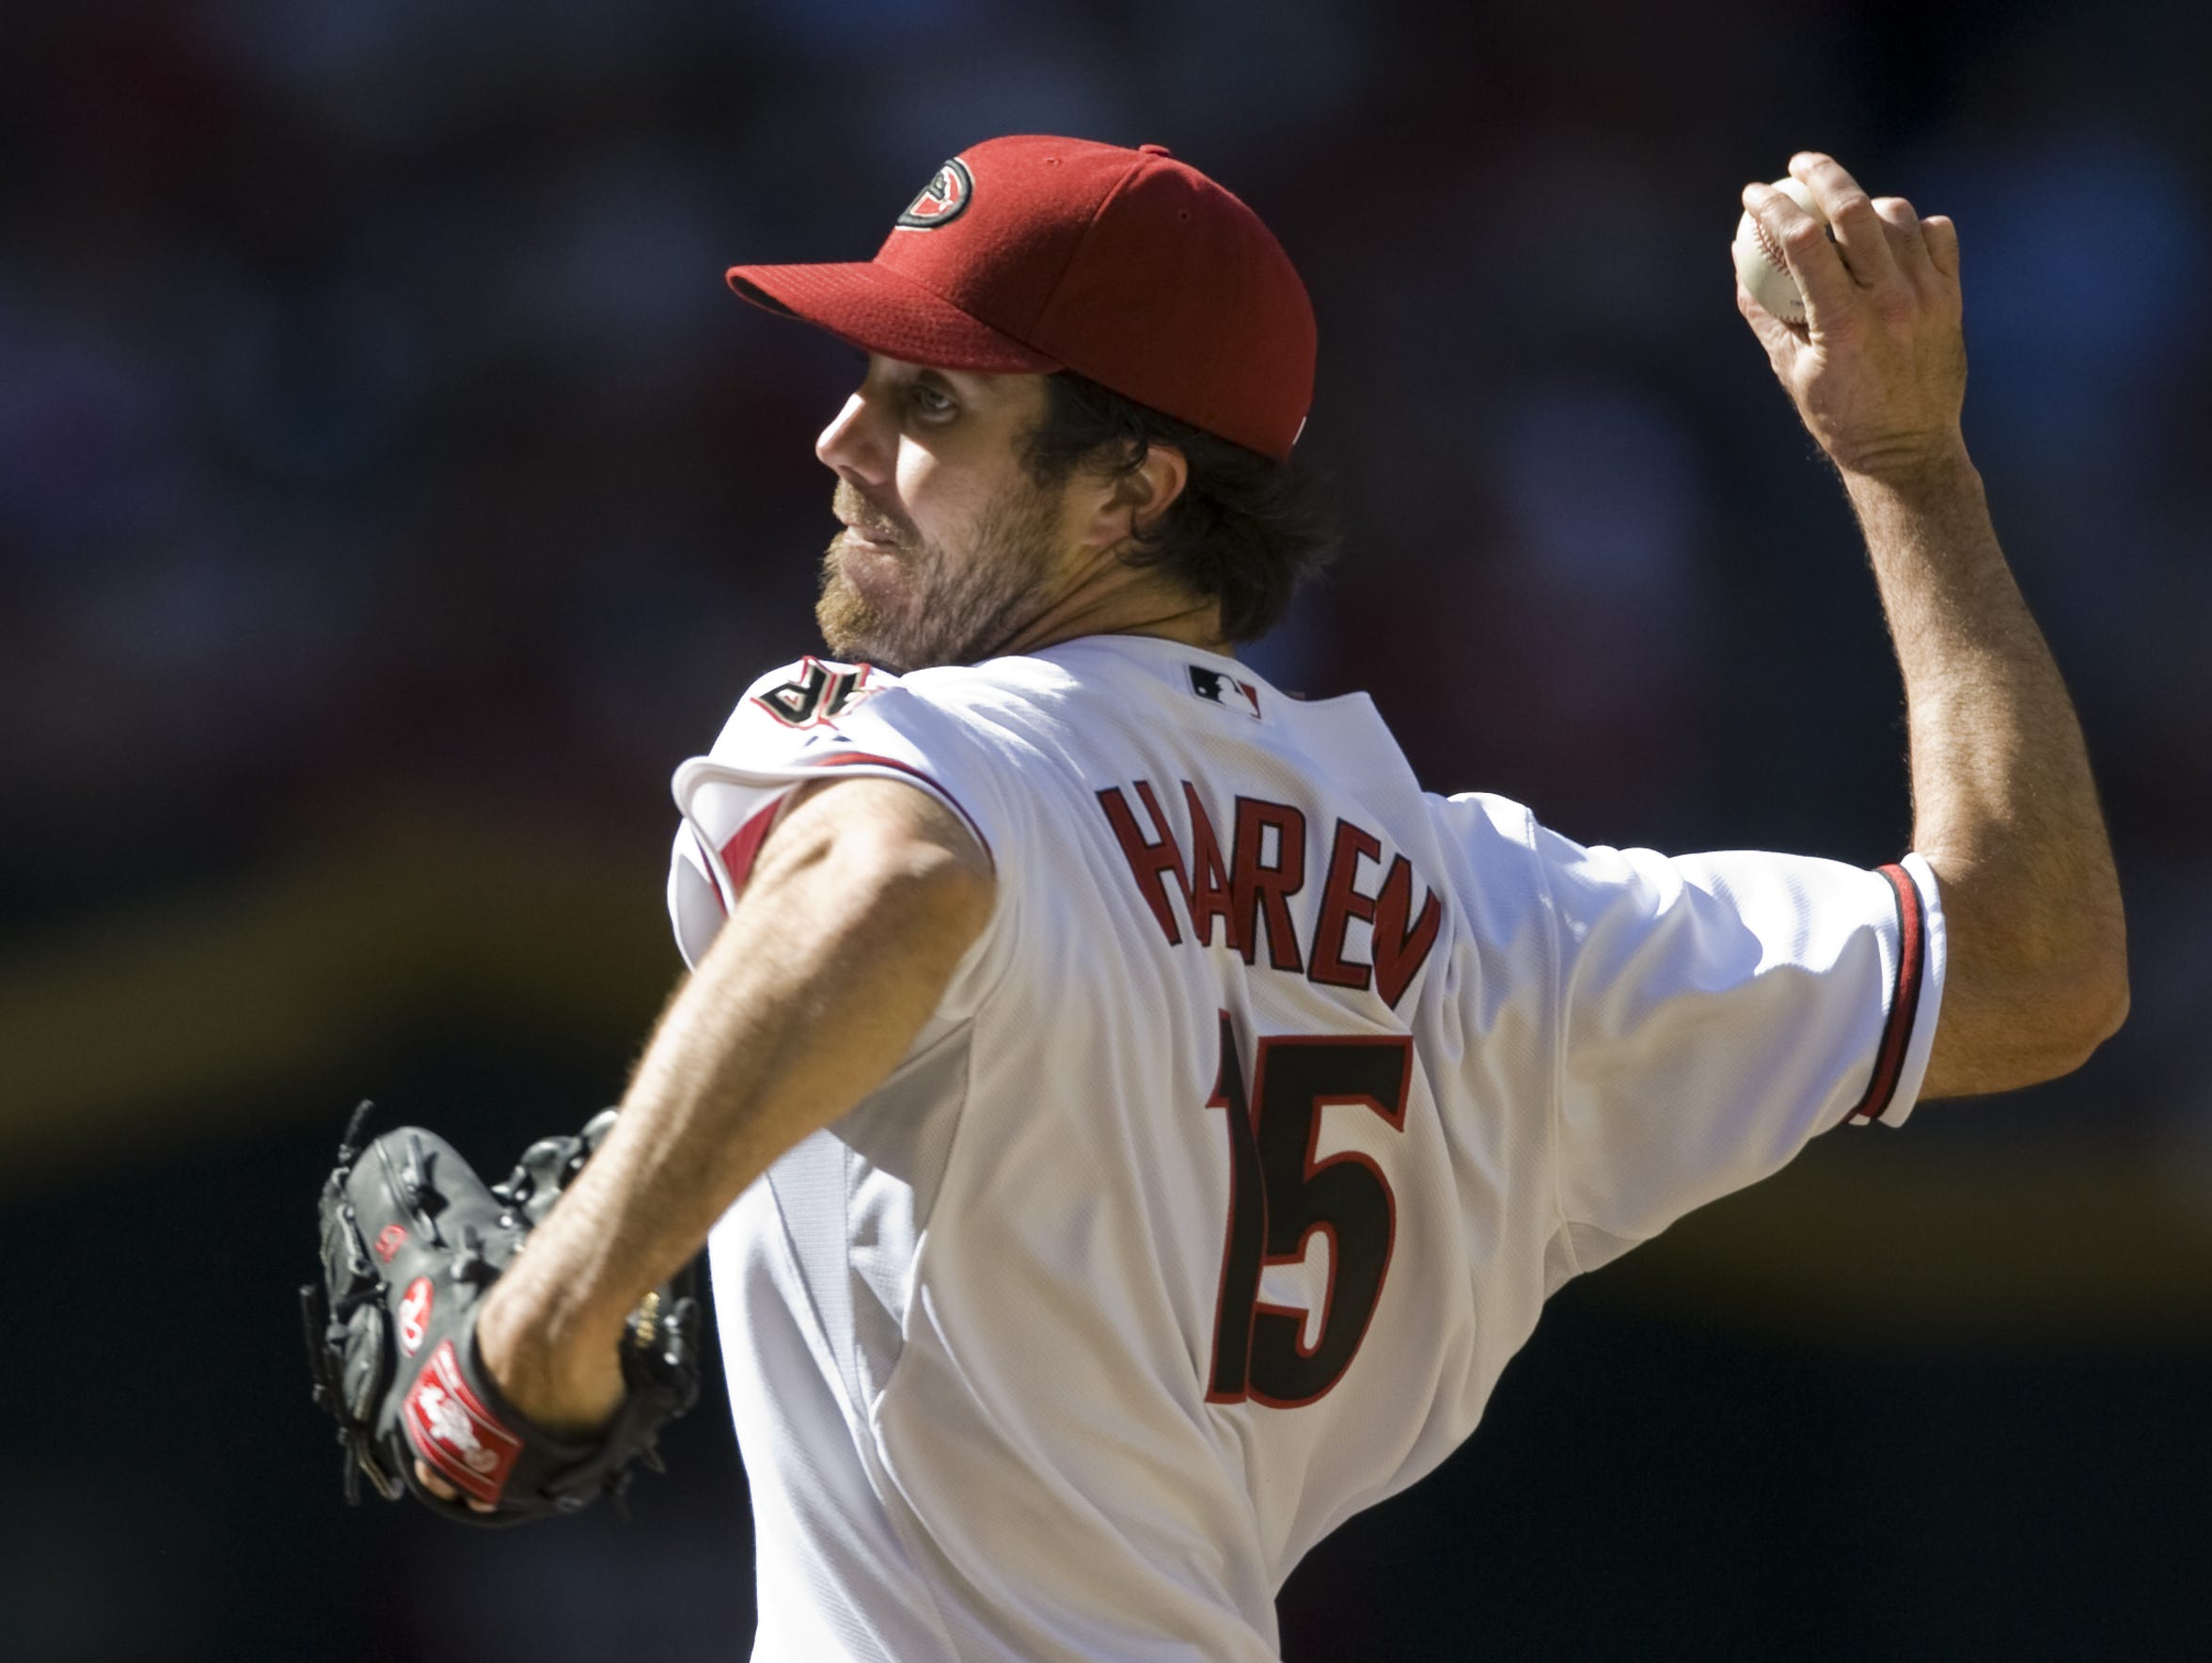 Dan Haren pitches for the Diamondbacks in 2010.